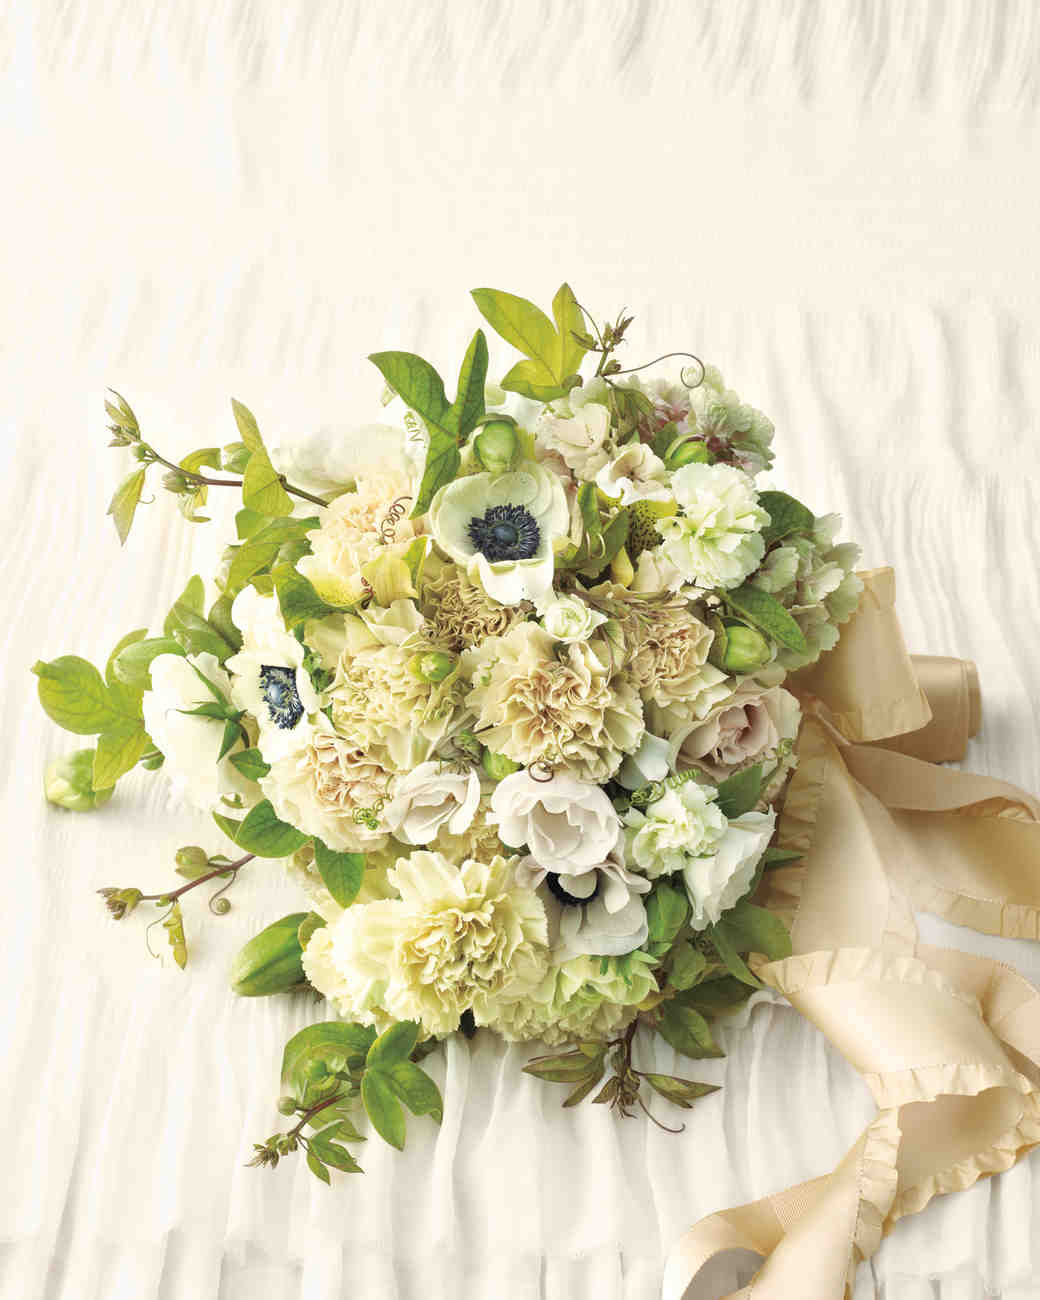 Ideas For Wedding Flower Arrangements: Carnation Wedding Ideas (Yes, It's More Than A Filler